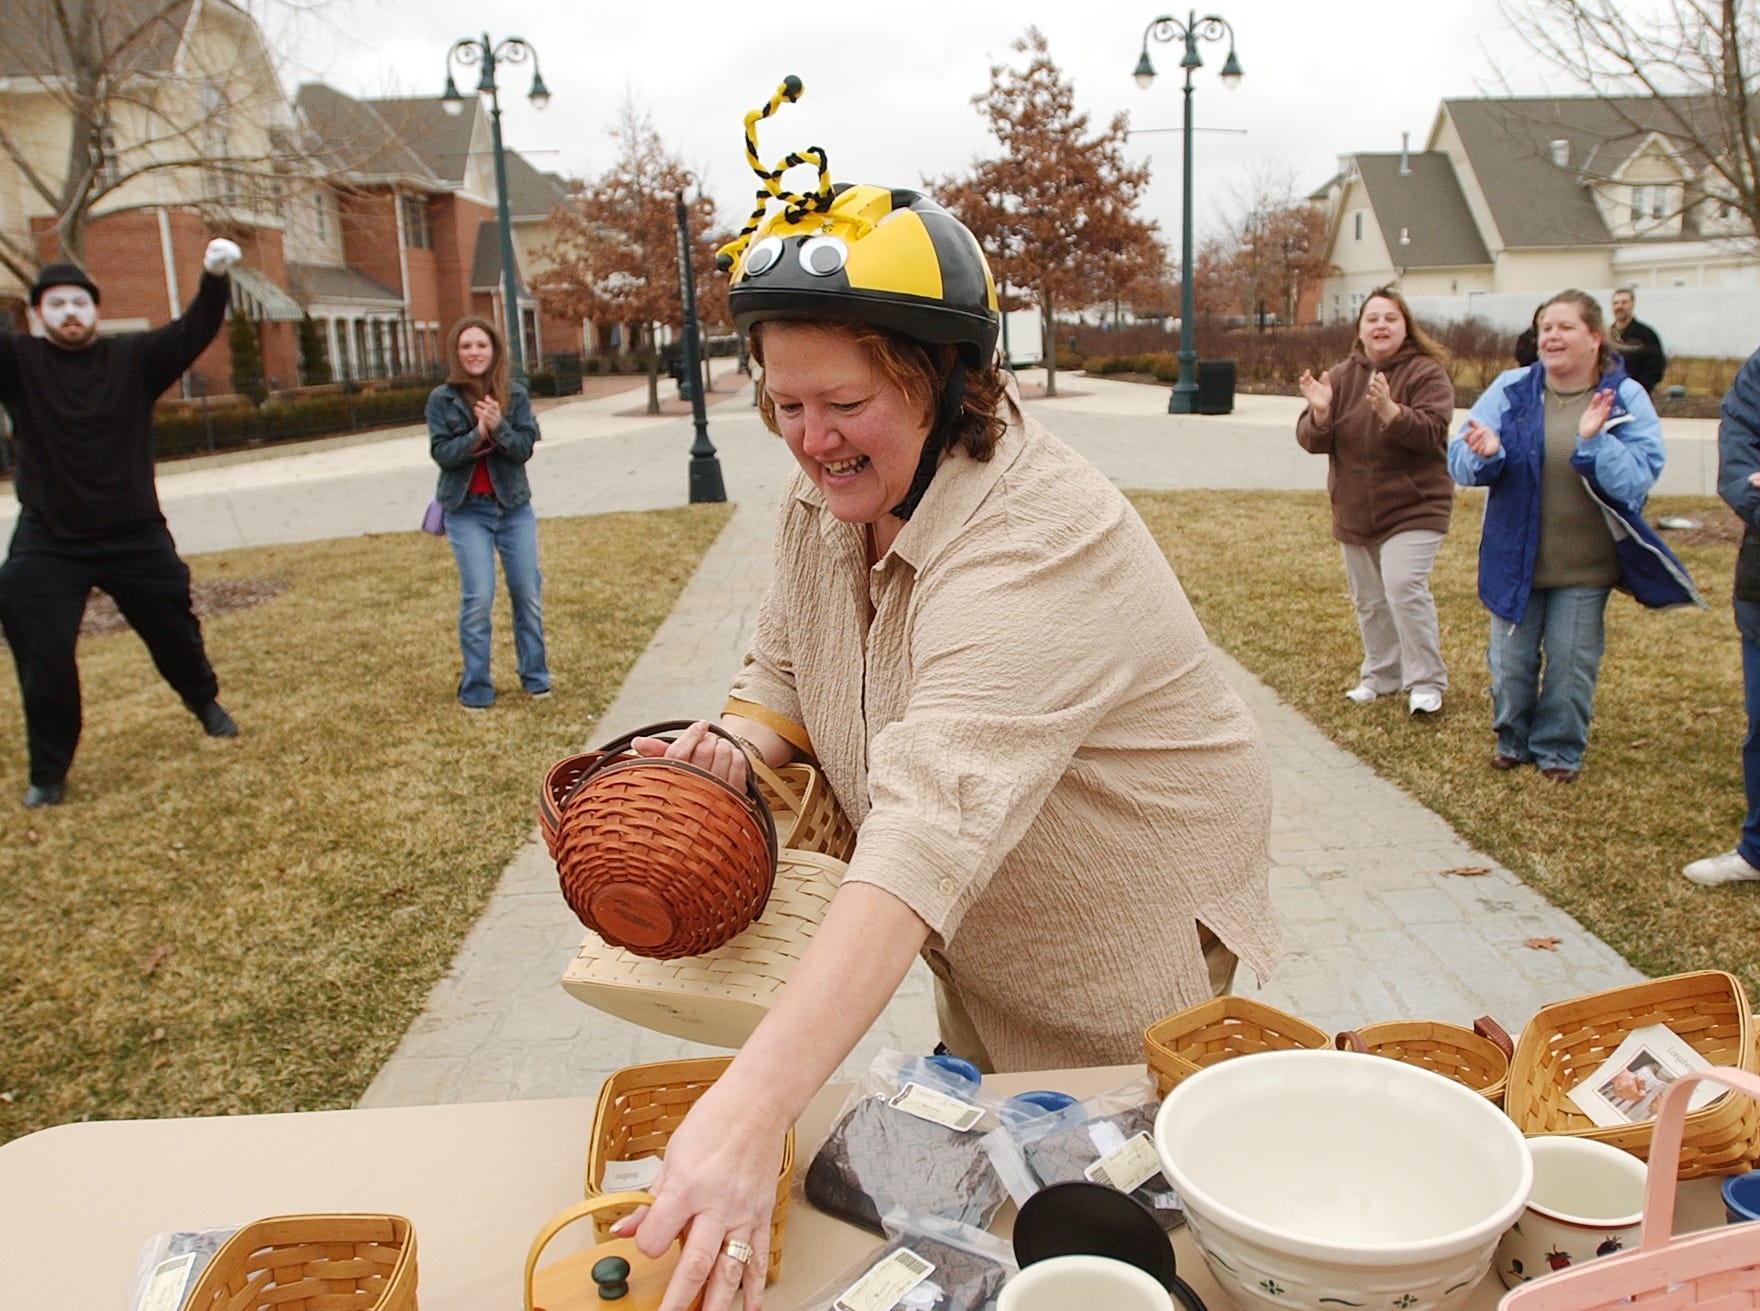 CHRIS CROOK/Times Recorder